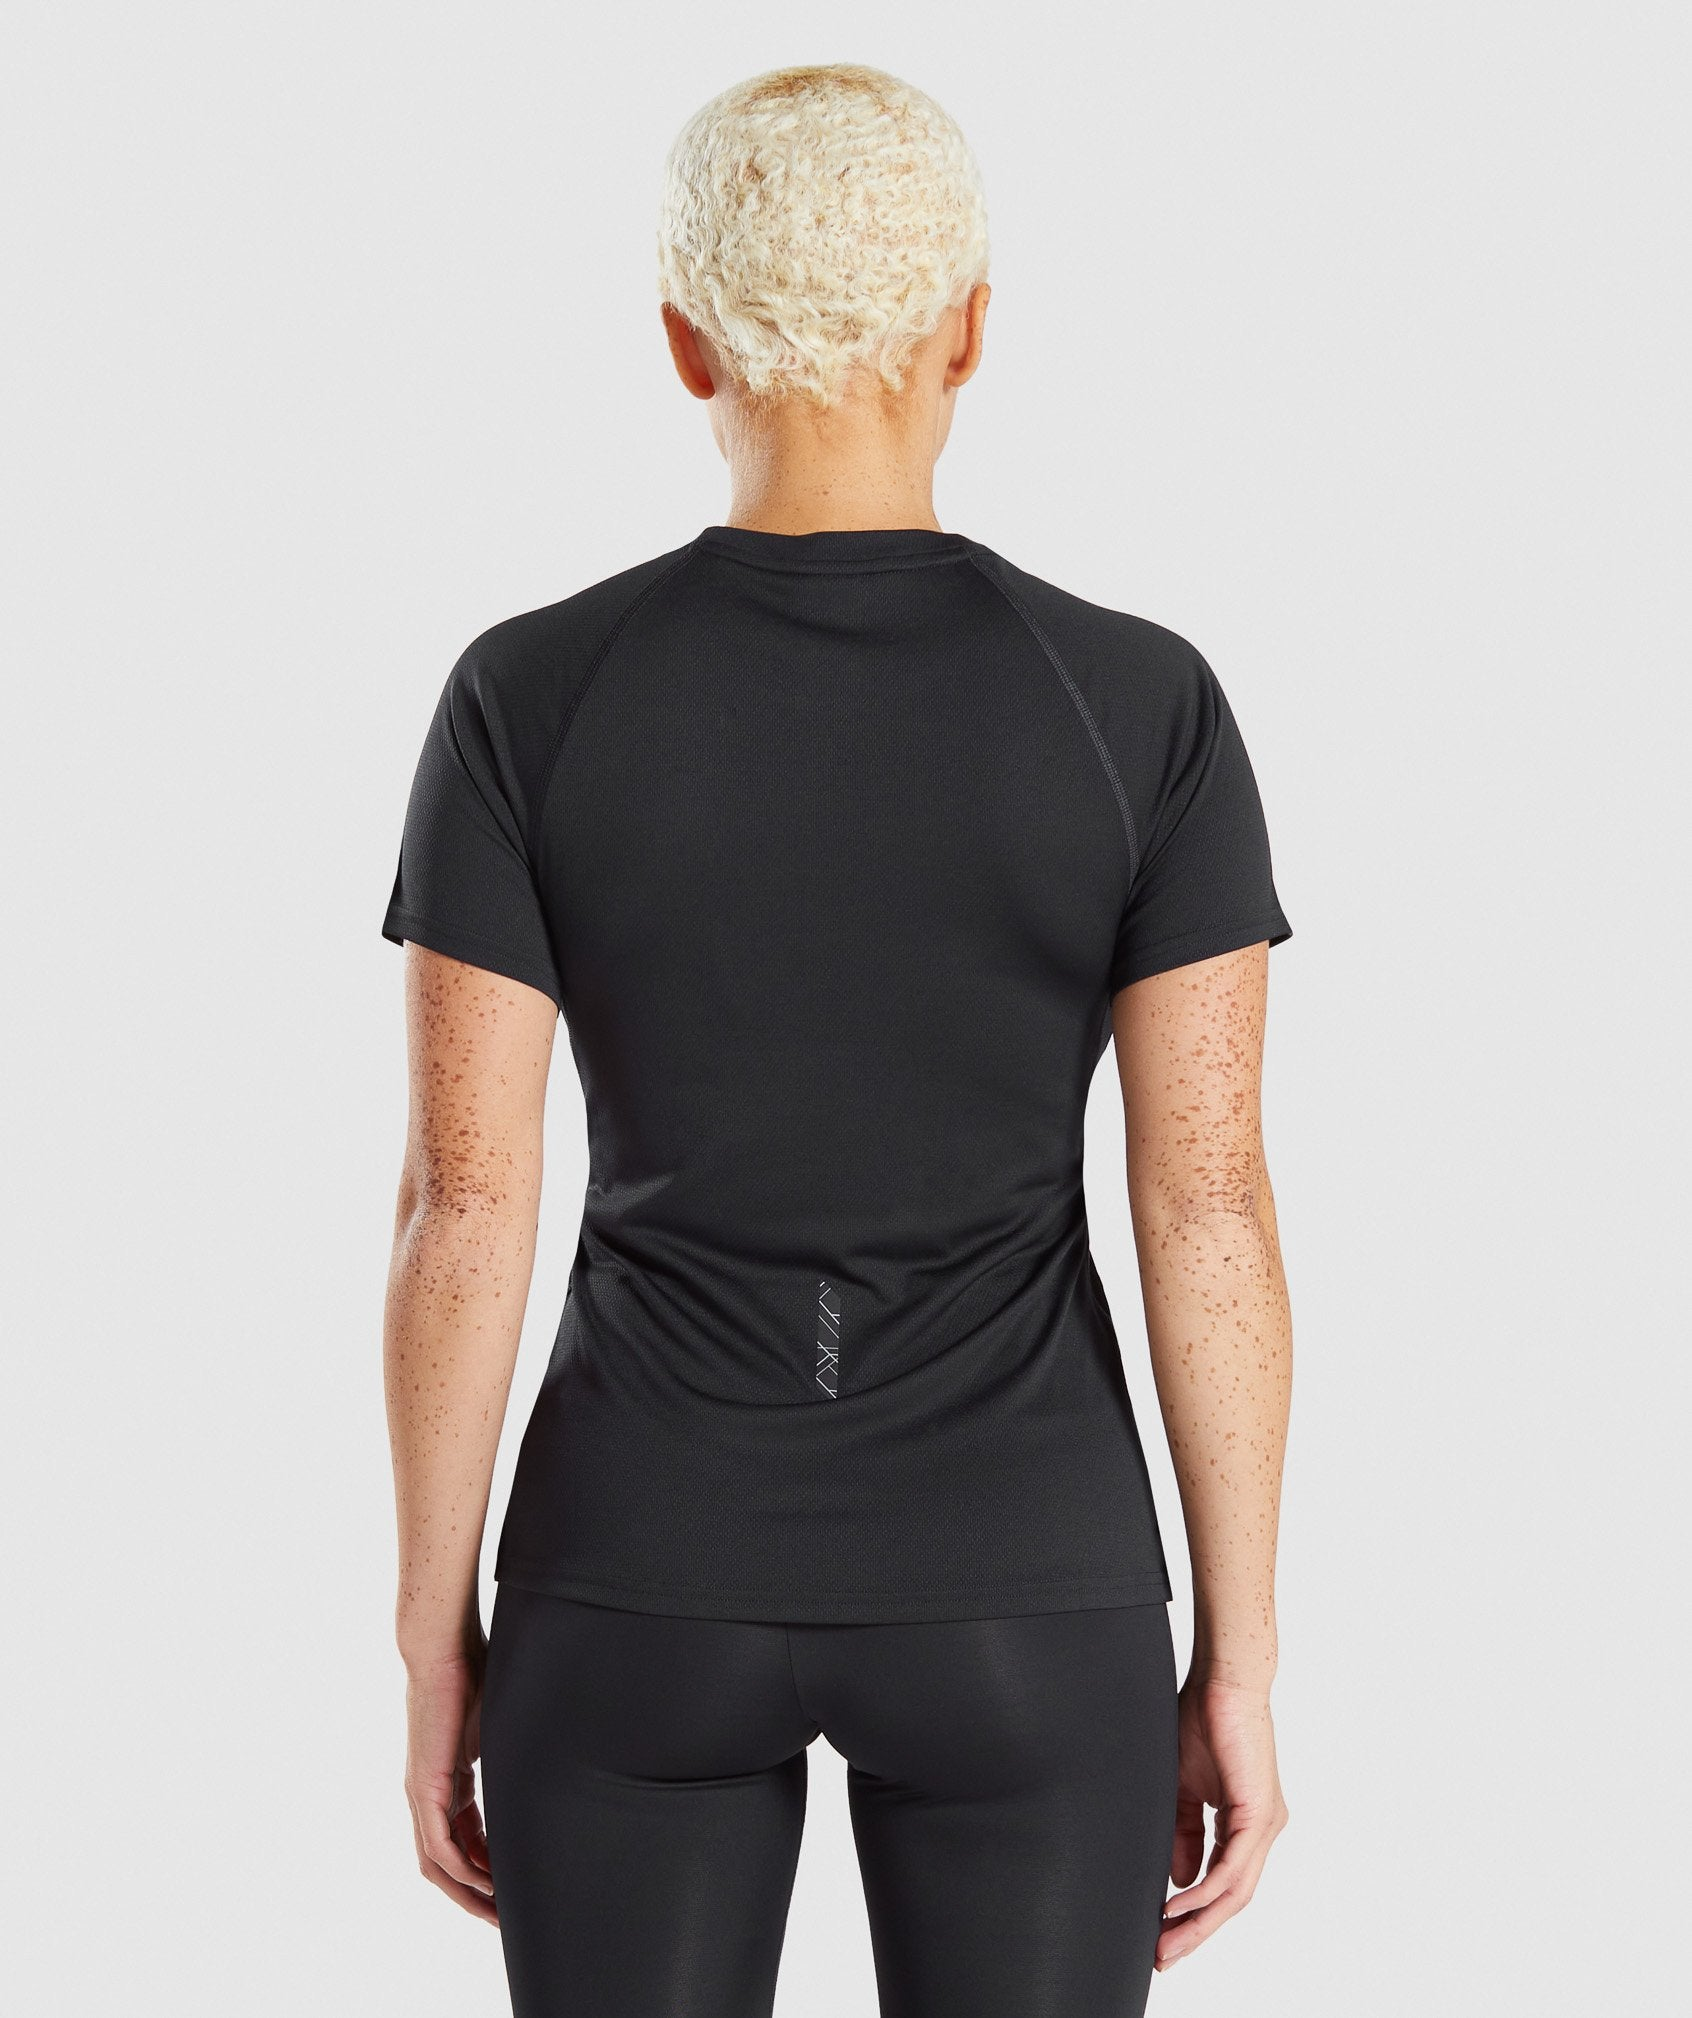 Classier: Buy Gymshark Speed T-shirt - Black - Gymshark